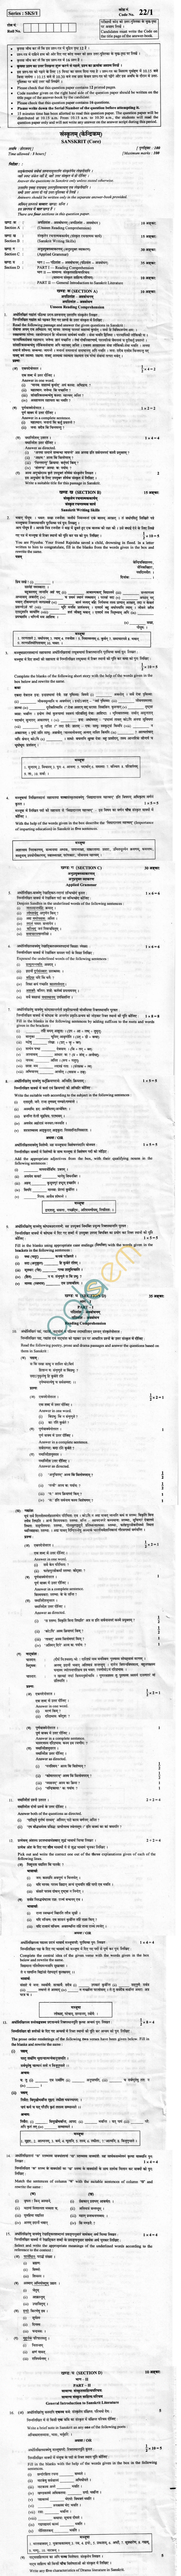 CBSE Board Exam 2013 Class XII Question Paper - Sanskrit (Core)